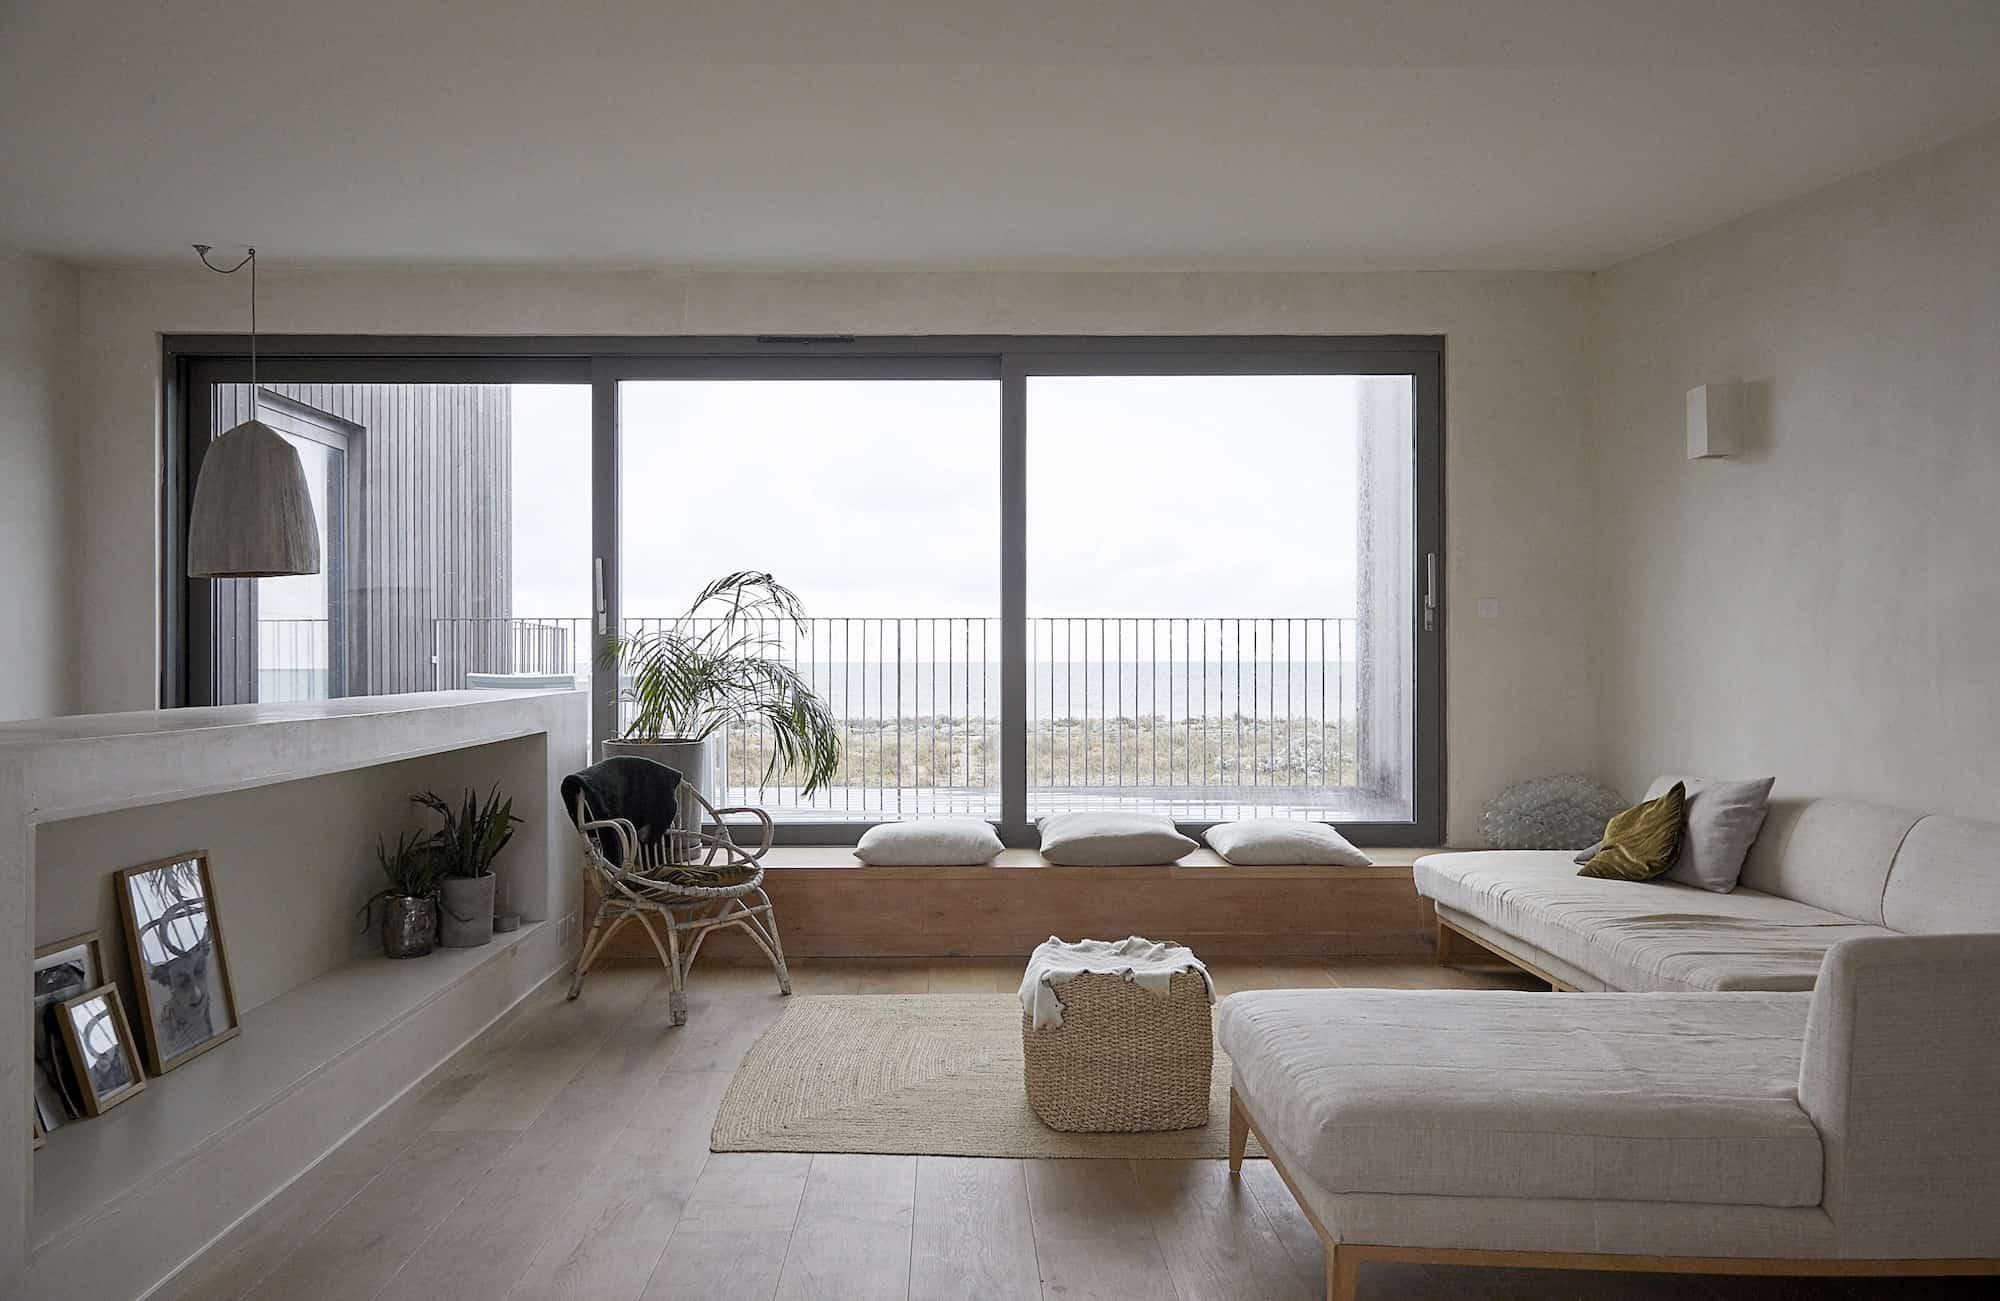 Shoreham Beach House BN43 - Scandi style sitting room on first floor with views out over the beach - The Location Guys